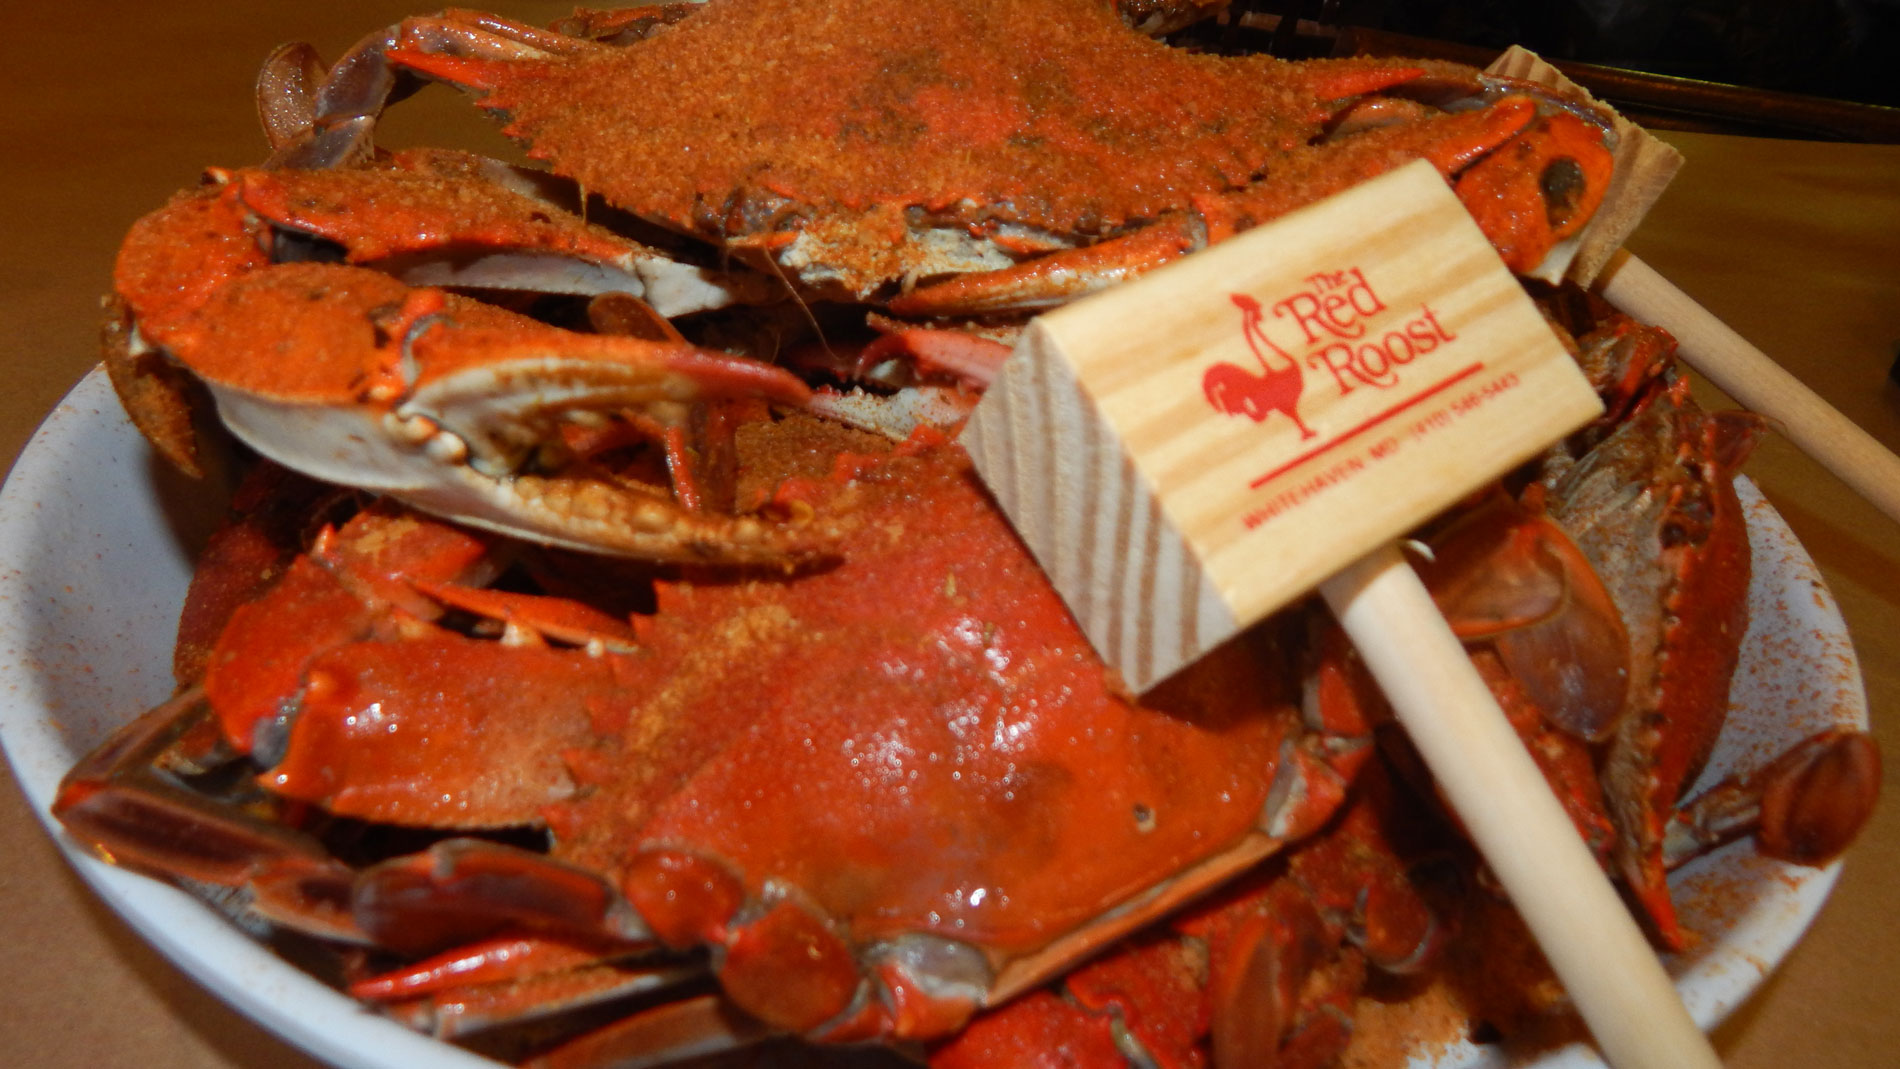 The Red Roost Crabhouse & Restaurant